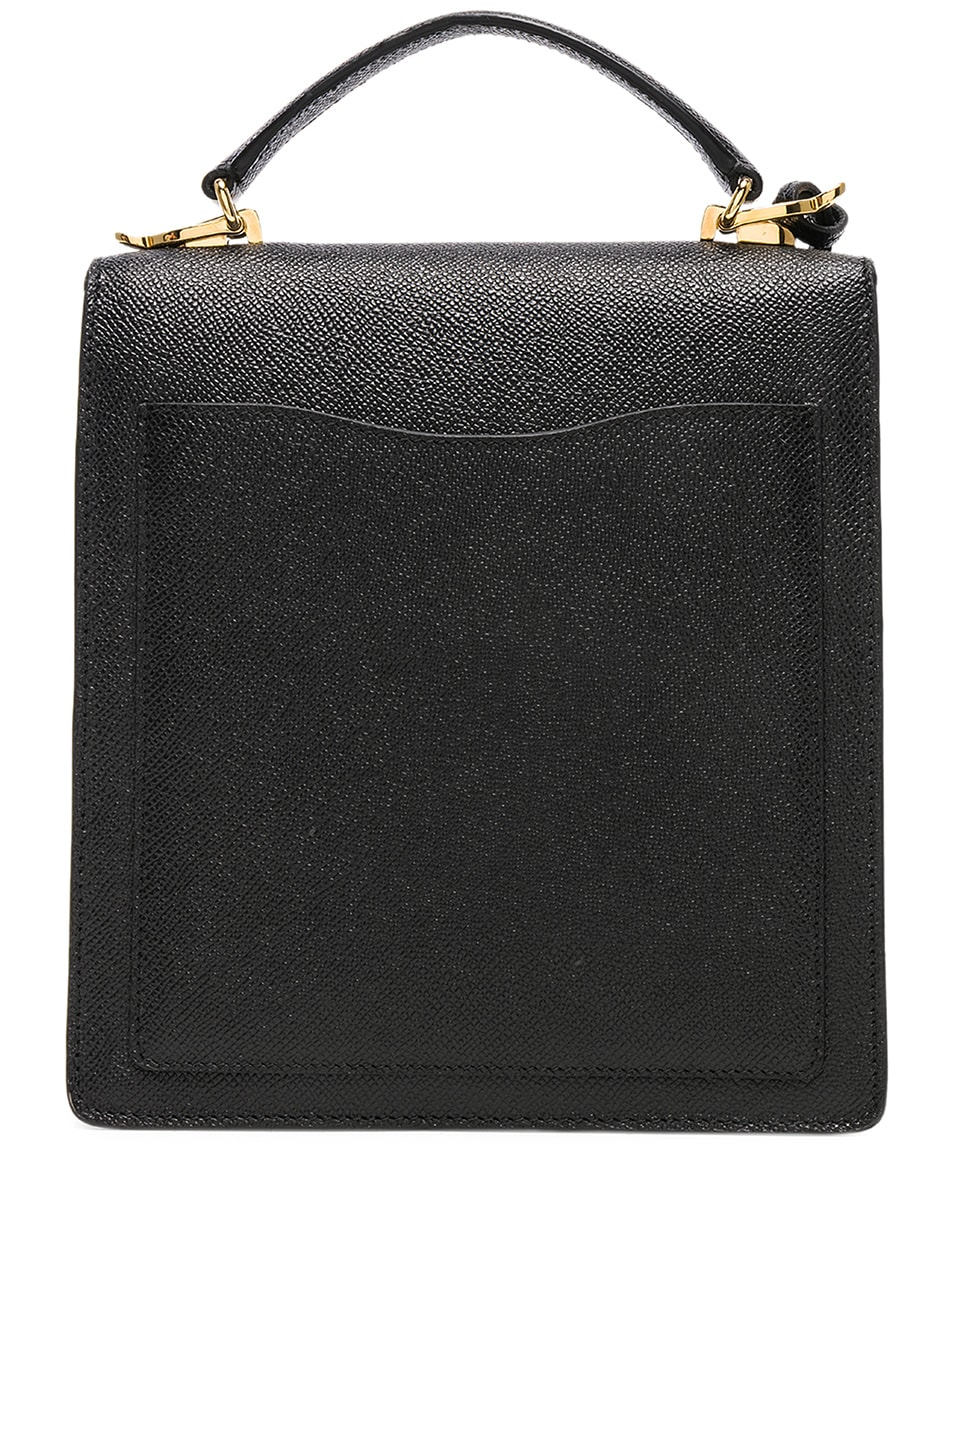 Image 3 of Mark Cross Saffiano Uptown Bag in Black